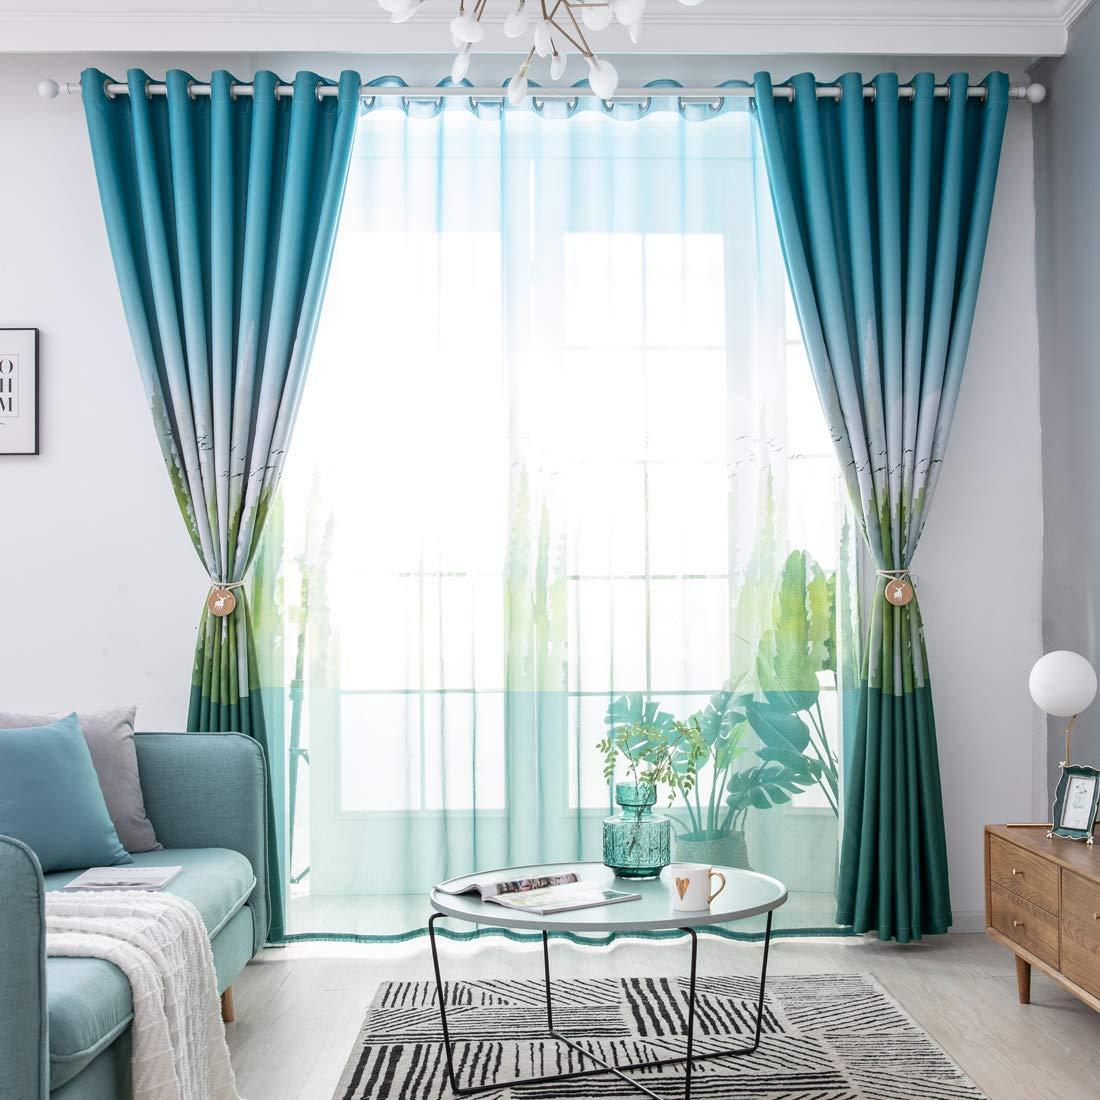 2021 Jarl Home Grey Green Blackout Curtains For Bedroom 2 Panels Grommet Thermal Insulated Cedar Ink Printed Black Out Curtain For Living Room From Jarlhome 20 98 Dhgate Com